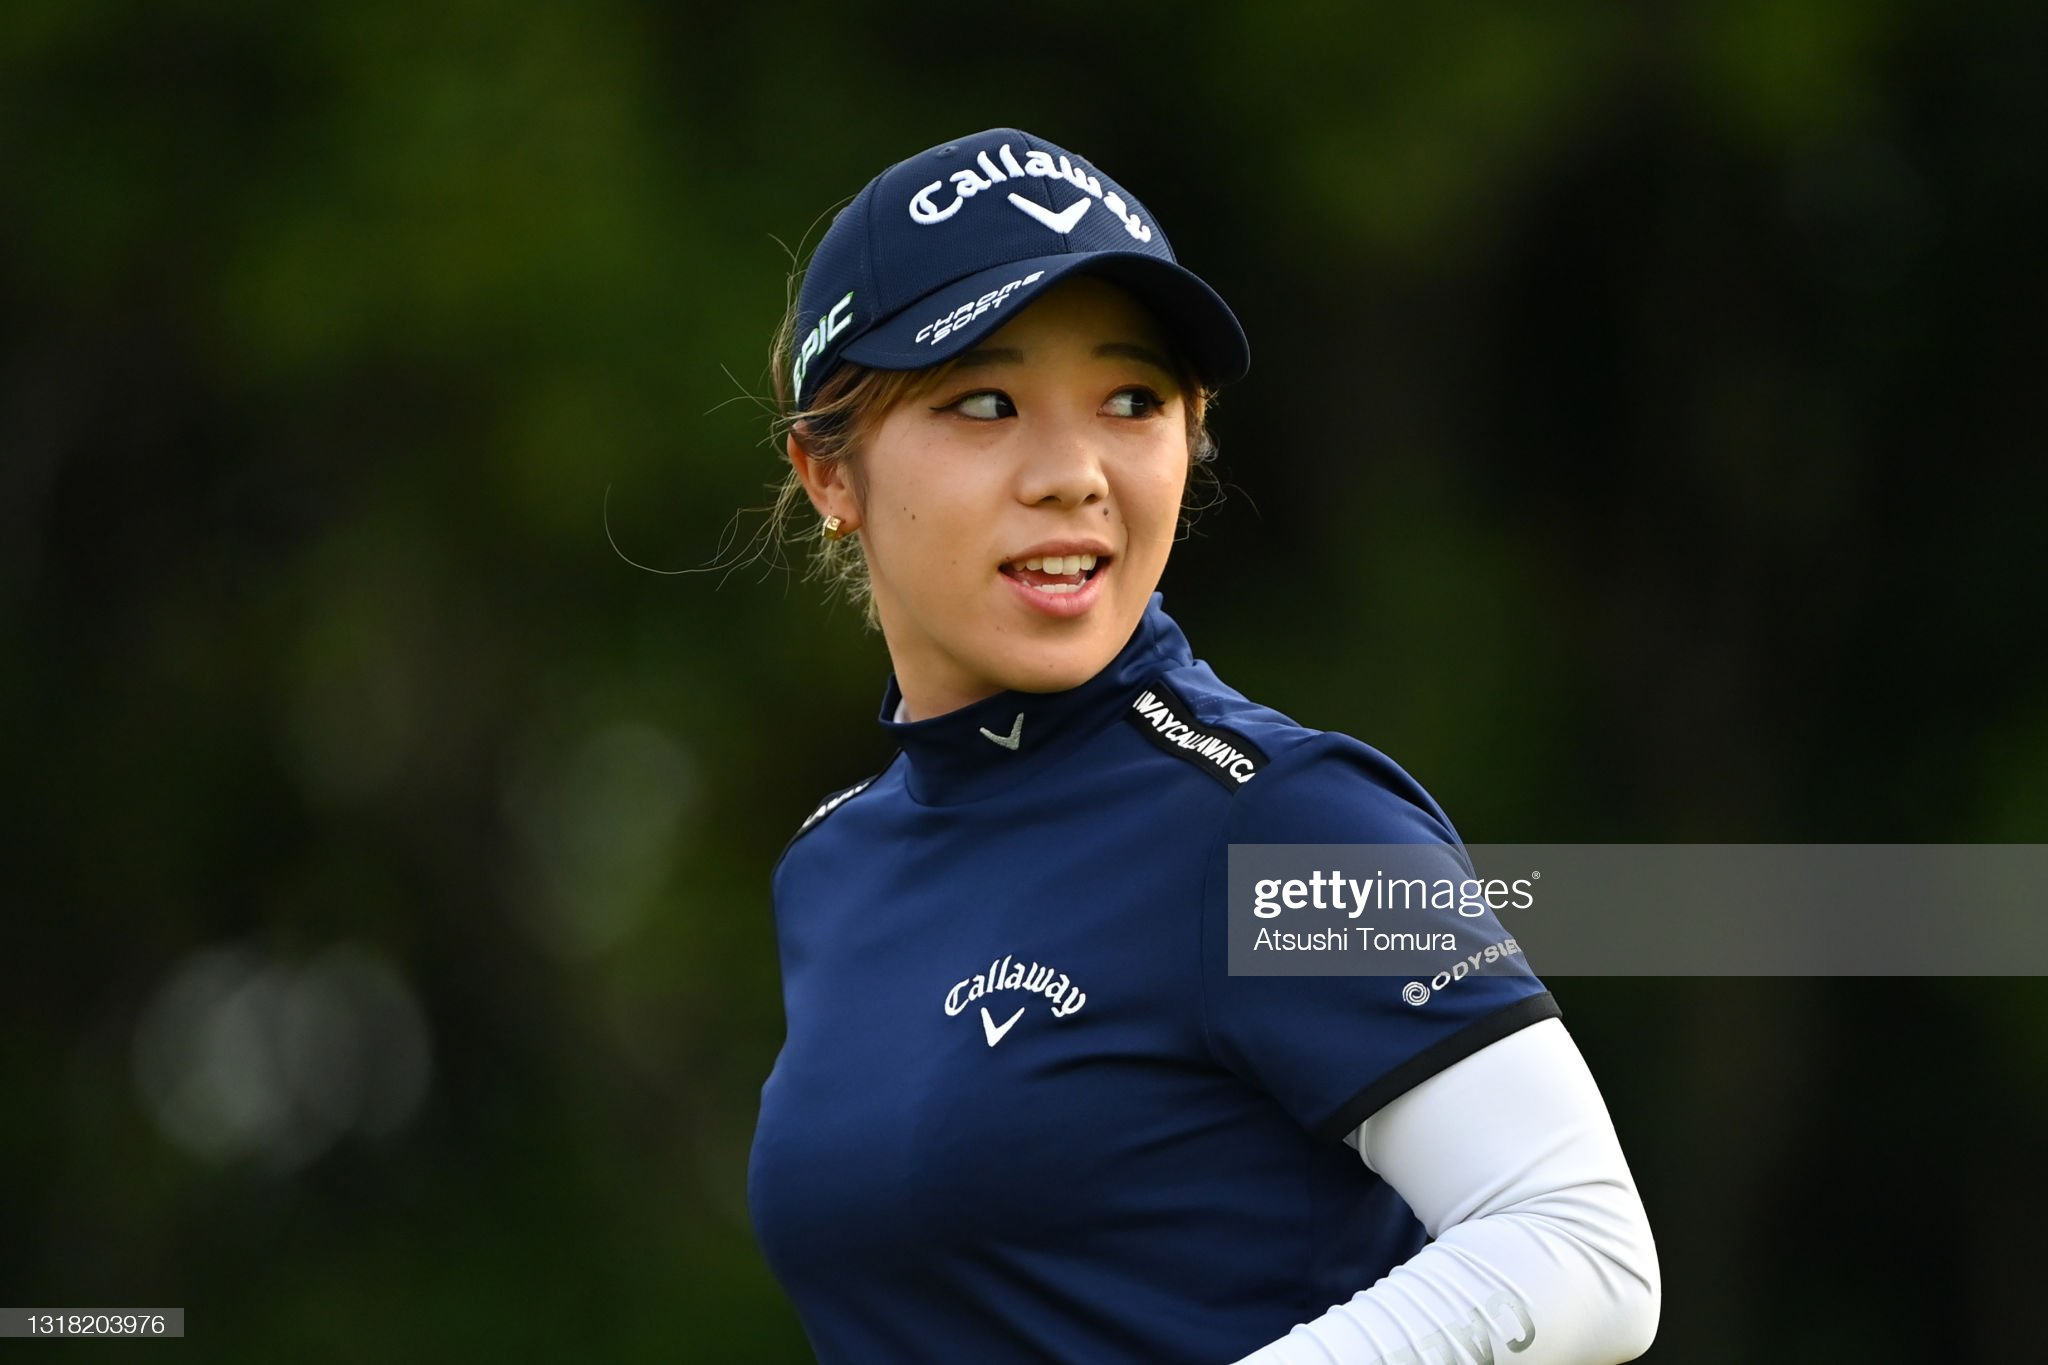 https://media.gettyimages.com/photos/mizuki-tanaka-of-japan-is-seen-on-the-practice-green-during-the-rest-picture-id1318203976?s=2048x2048